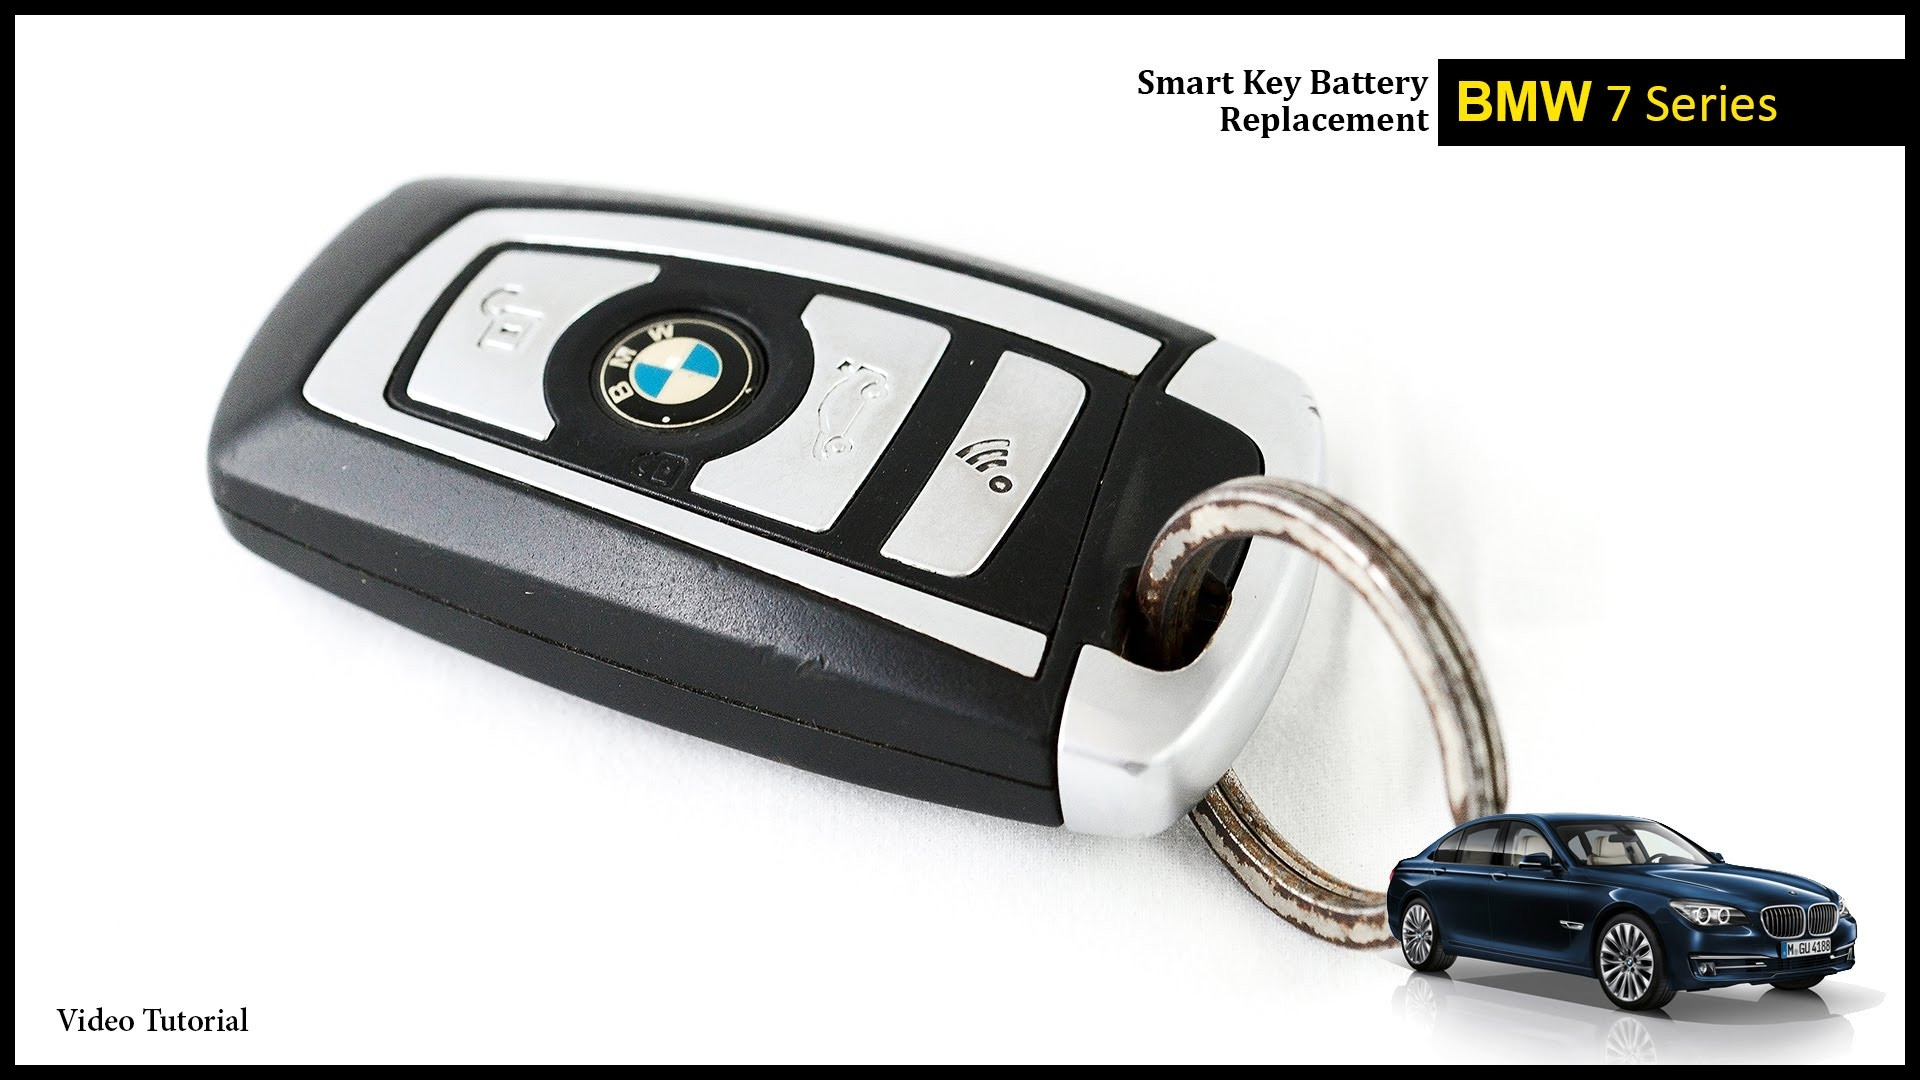 Bmw Replacement Key Price Unique Bmw 7 Series Smart Key Battery Change